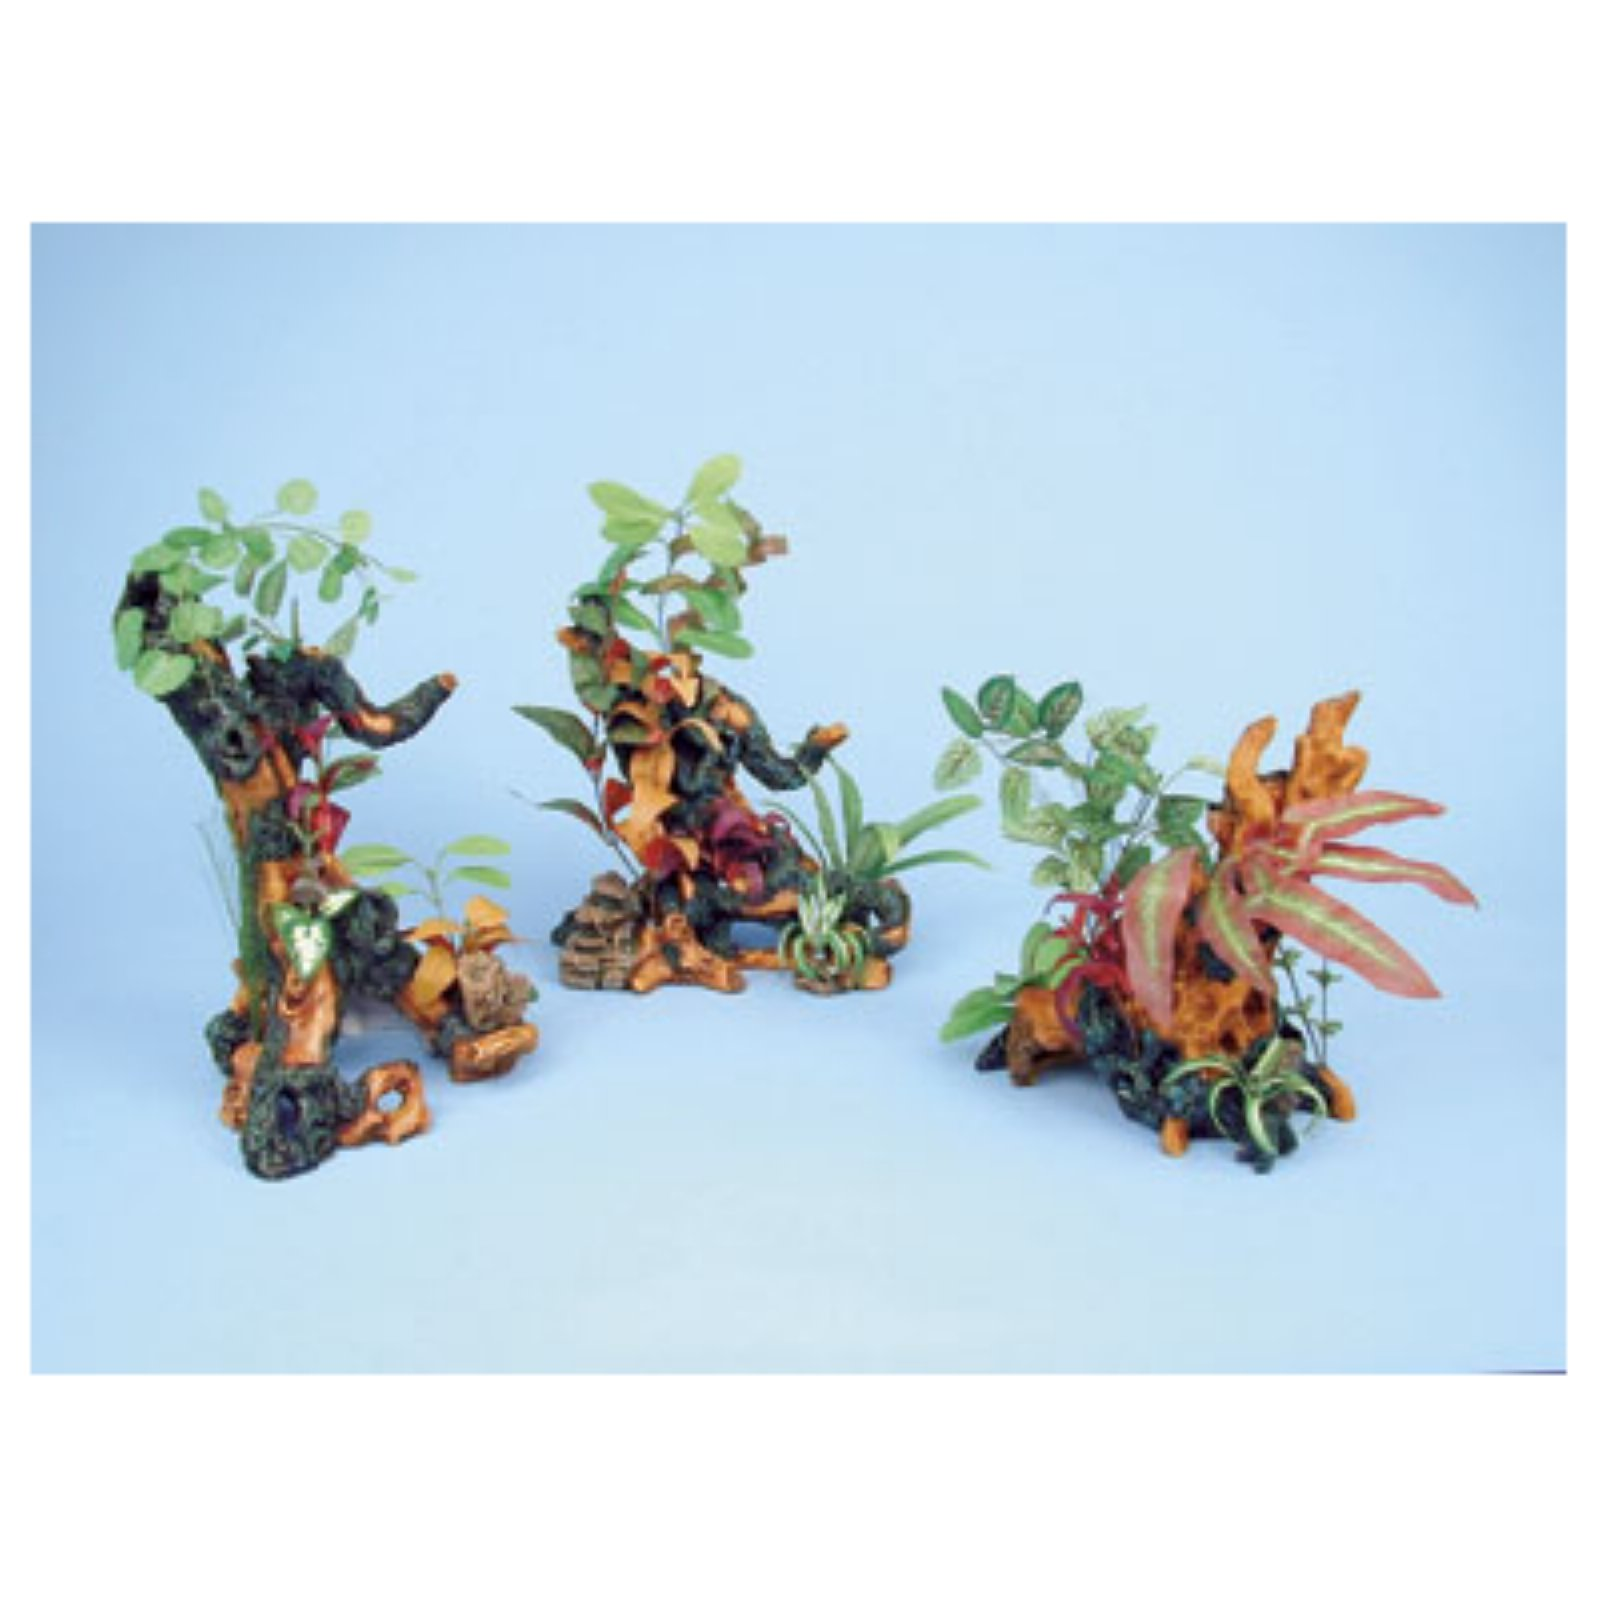 Island Driftwood Gardens XL Aquarium Decoration